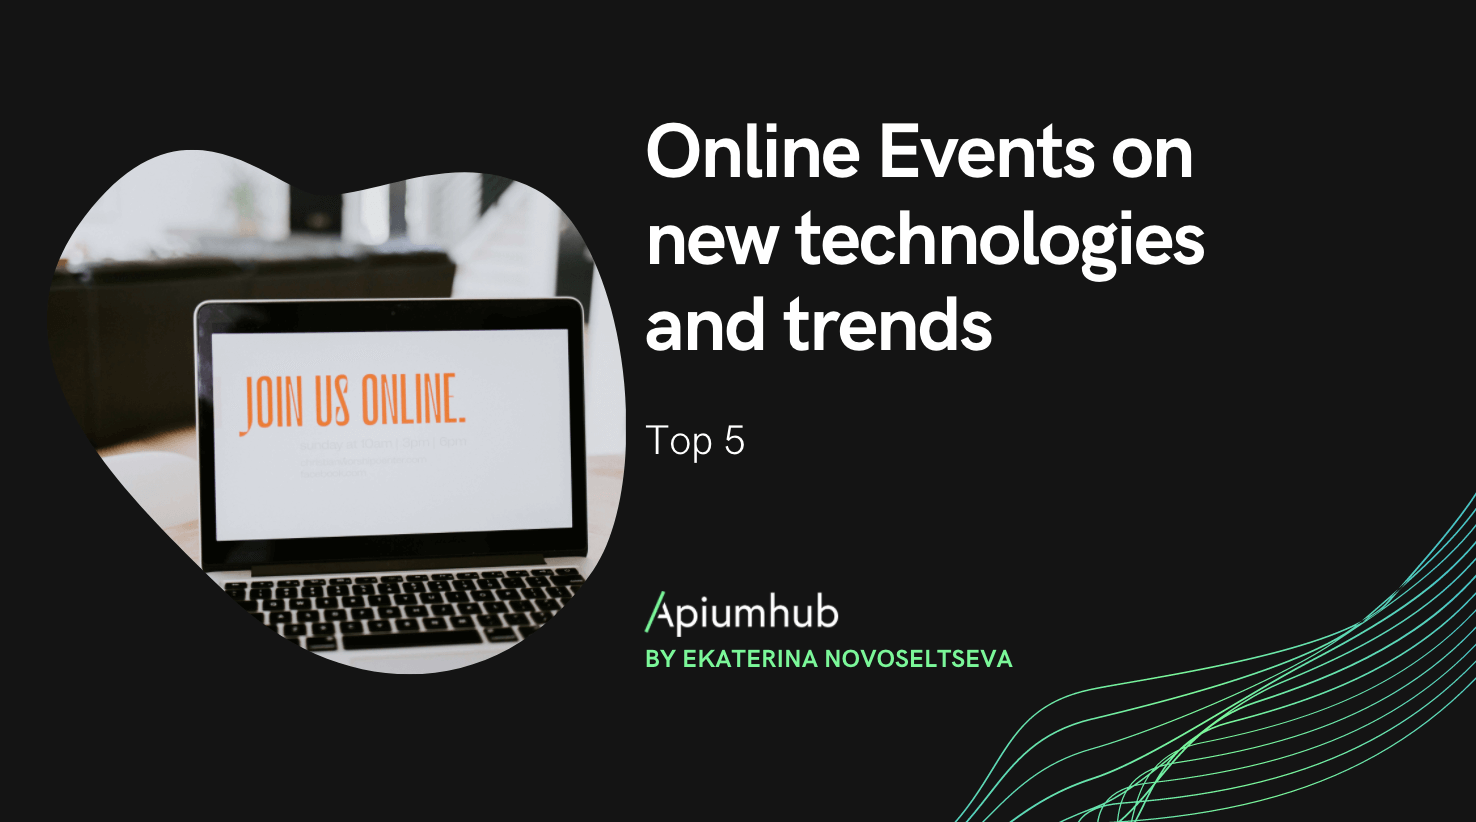 Online Events on new technologies